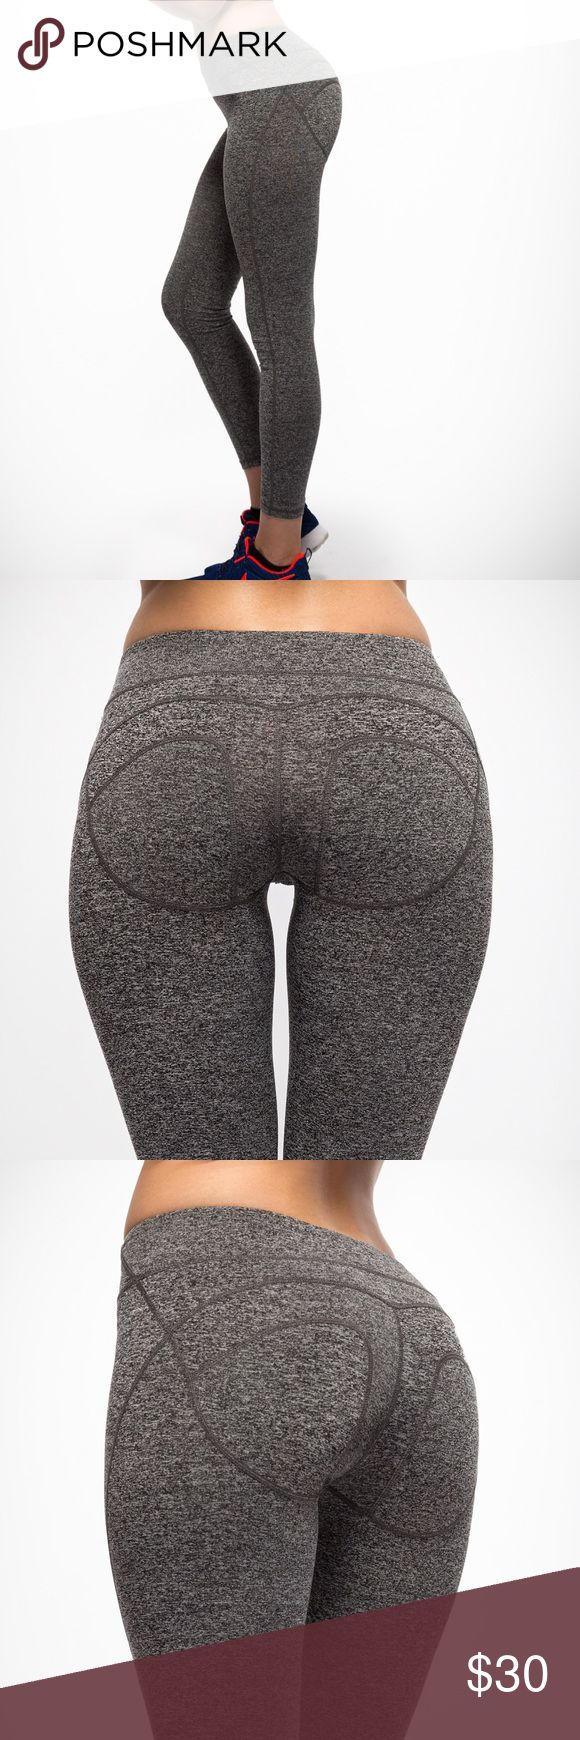 Butt Lifting & Body Shaping Leggings Signature design that flattering for your butt and slimming on the body. The technical pattern lifts the booty, while enchanting the shape. This legging features a medium height waist to keep you feeling covered and secure. These leggings are sexy, flattering and easy to wear, simply pair with any workout too for the workout studio or throw with a cute everyday top to get ready for the day. OSoME Pants Leggings